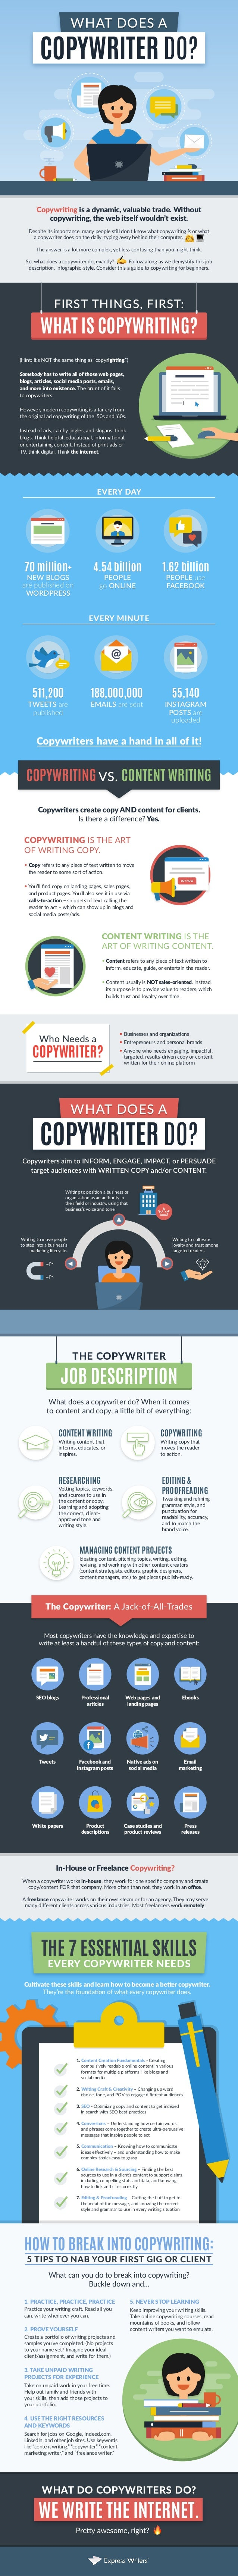 Copywriting is a dynamic, valuable trade. Without copywriting, the web itself wouldn't exist. Despite its importance, many...